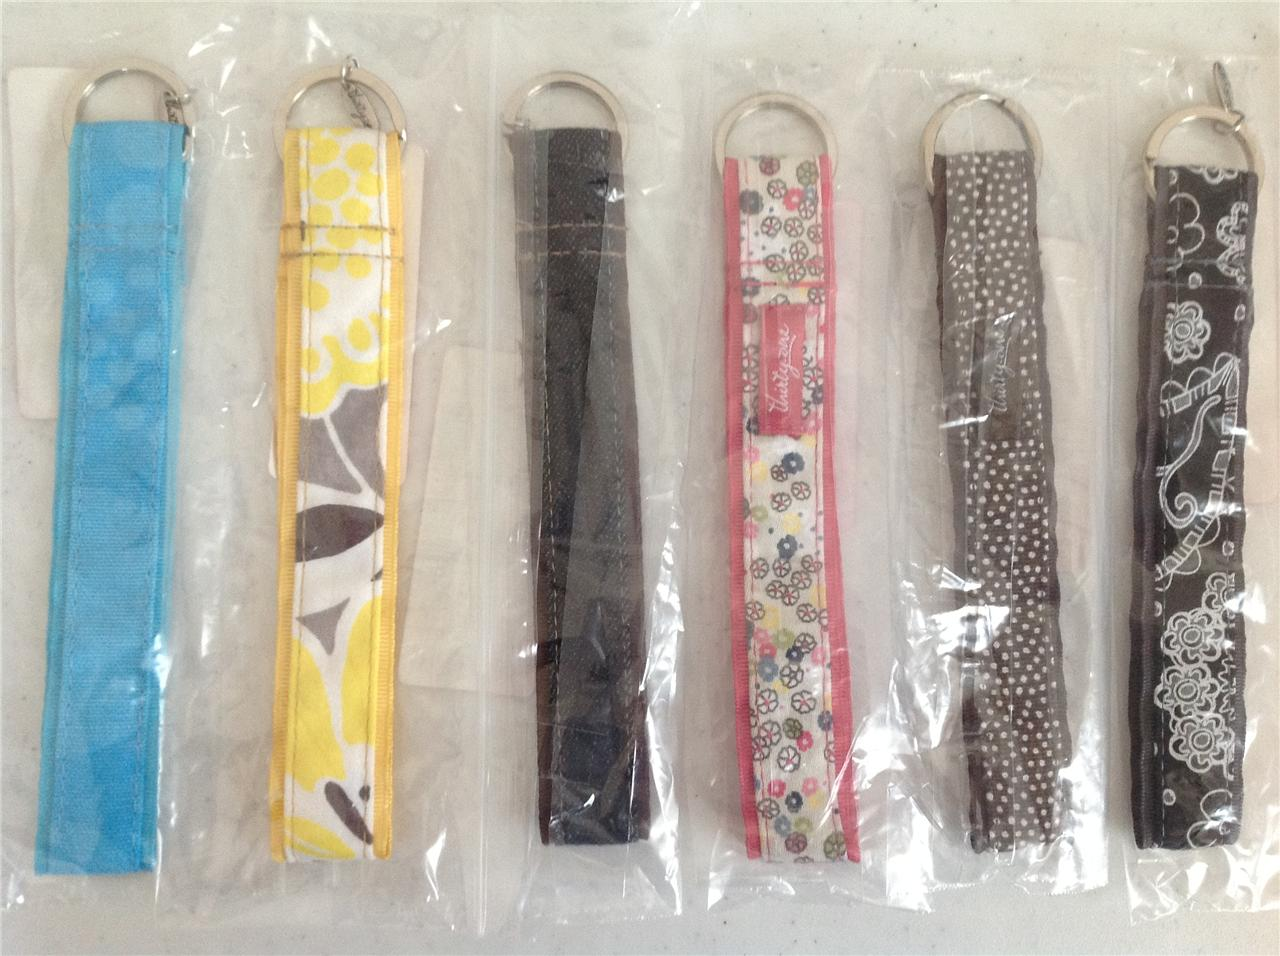 Thirty-One-Gifts-Authentic-KEY-FOB-Keychain-Keyring-Fast-Free-Ship-Choose-One